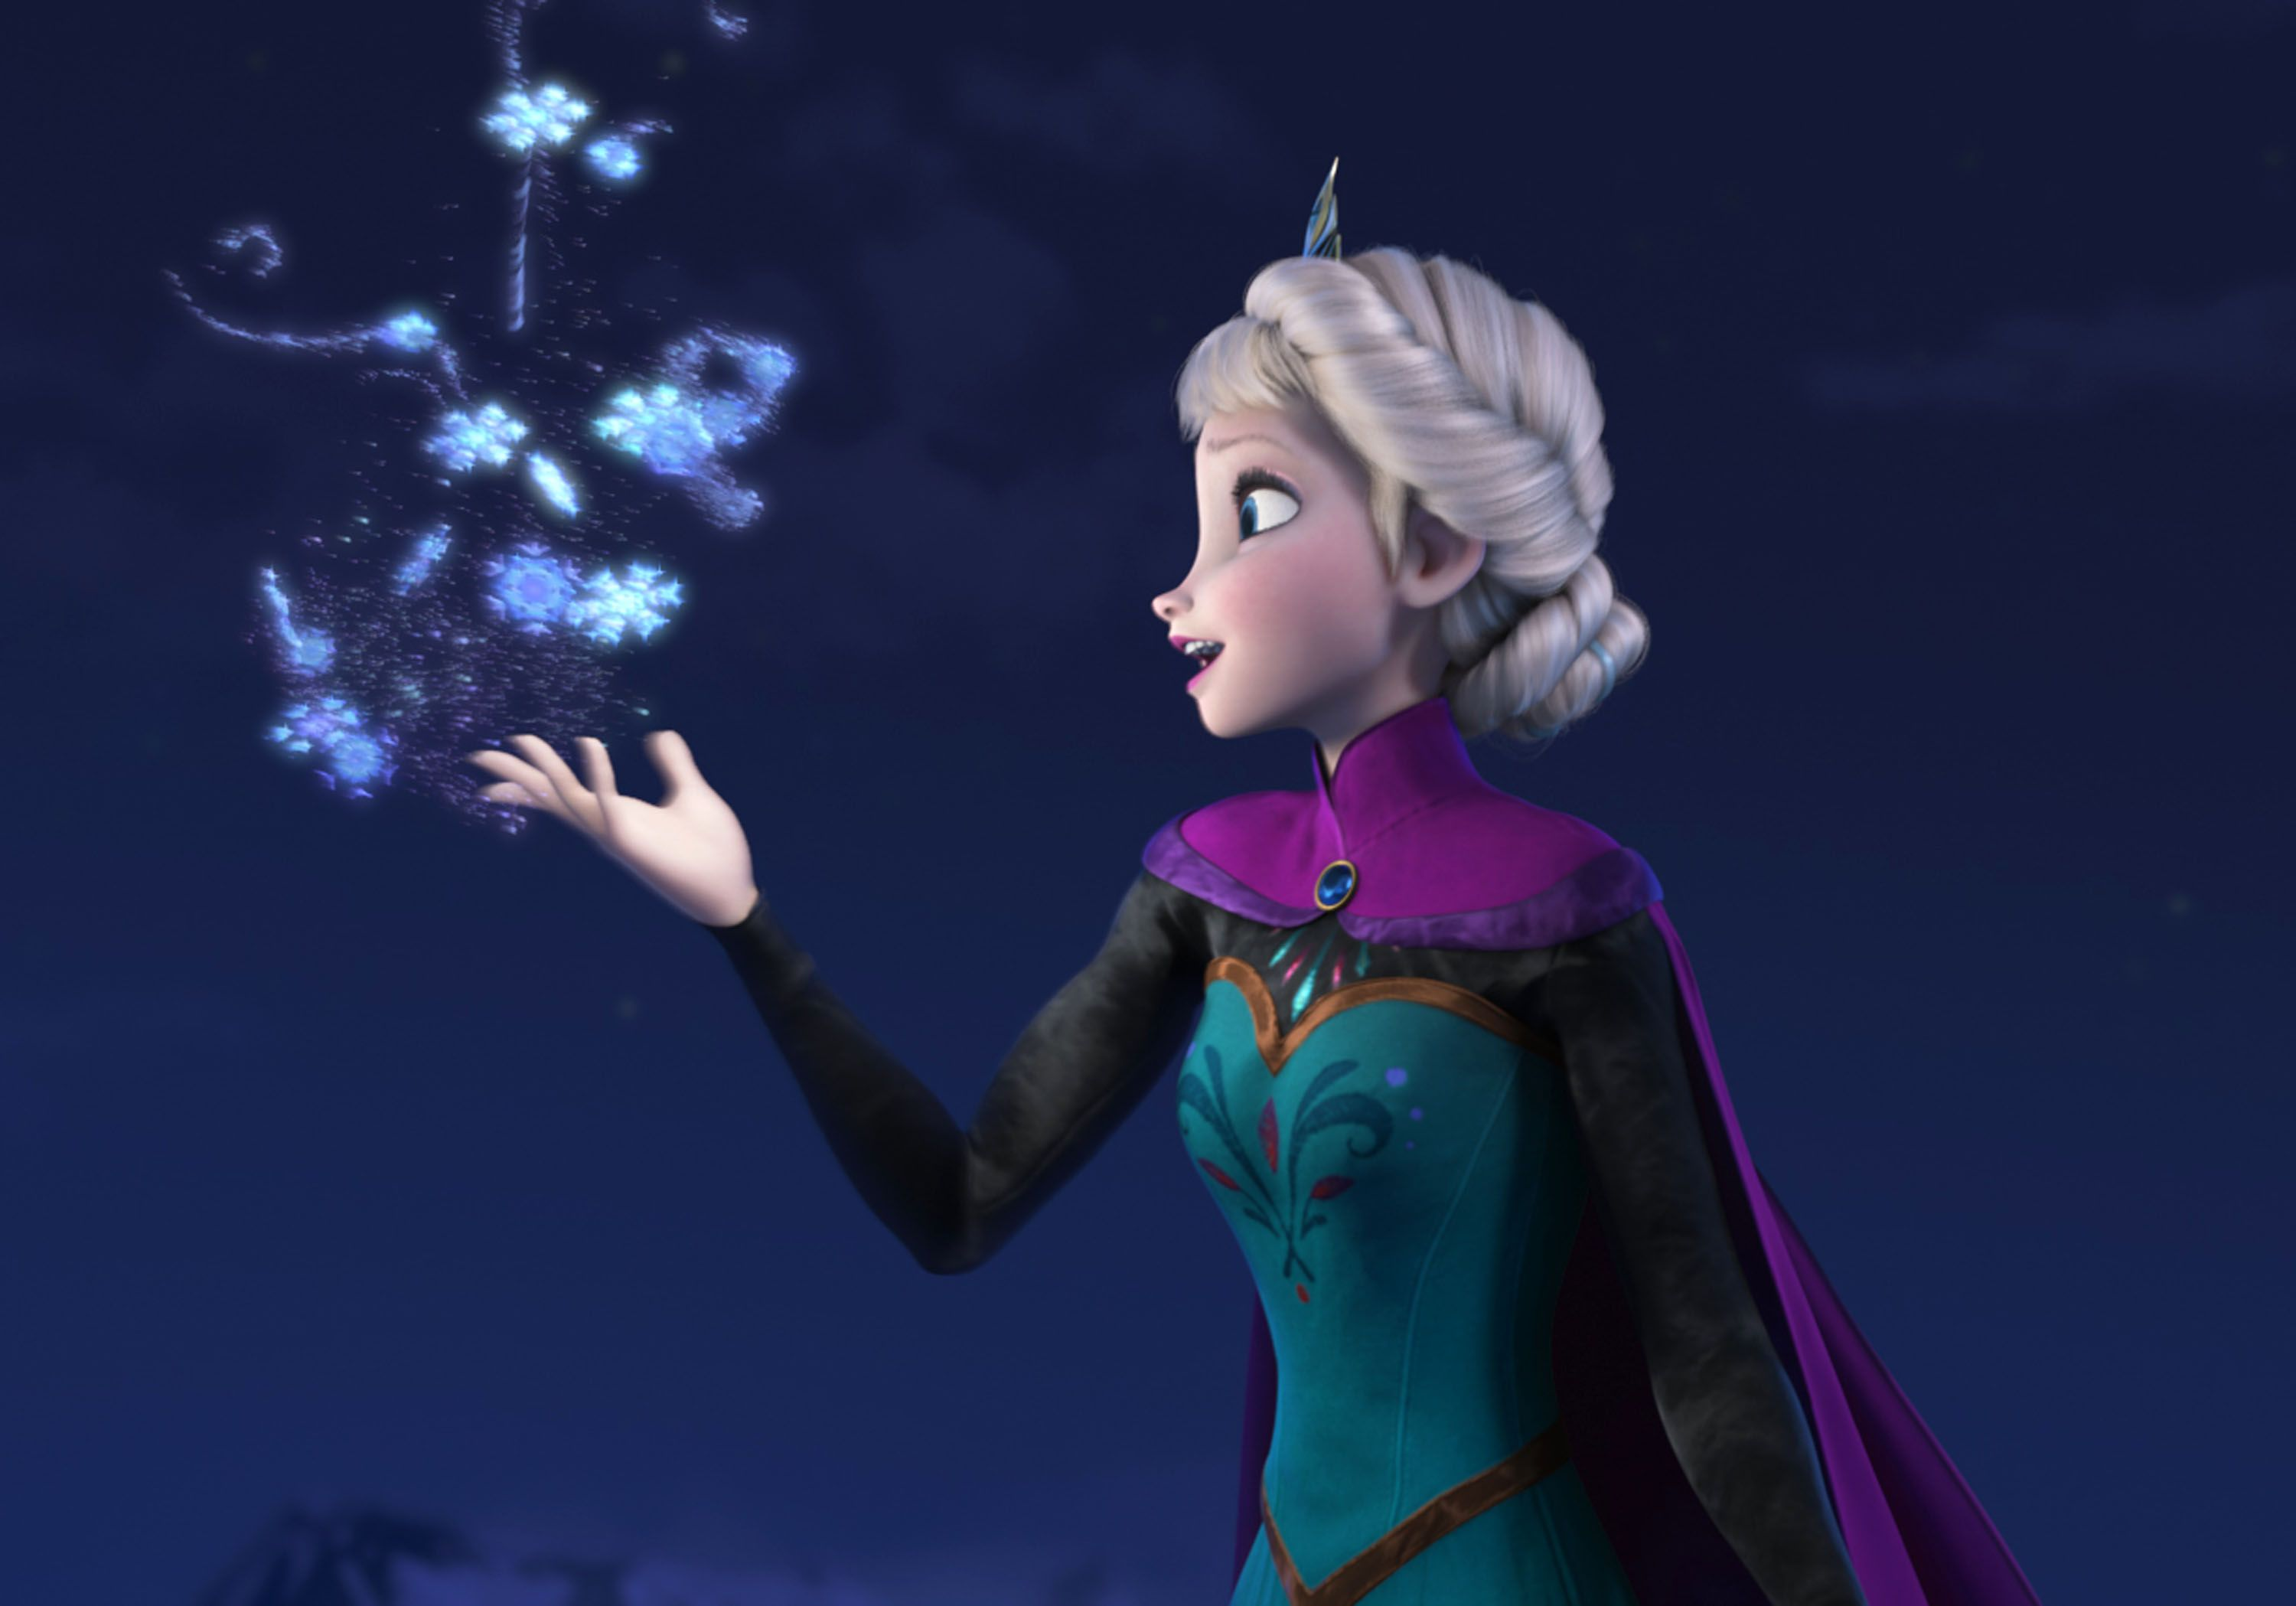 frozen 2 - photo #33